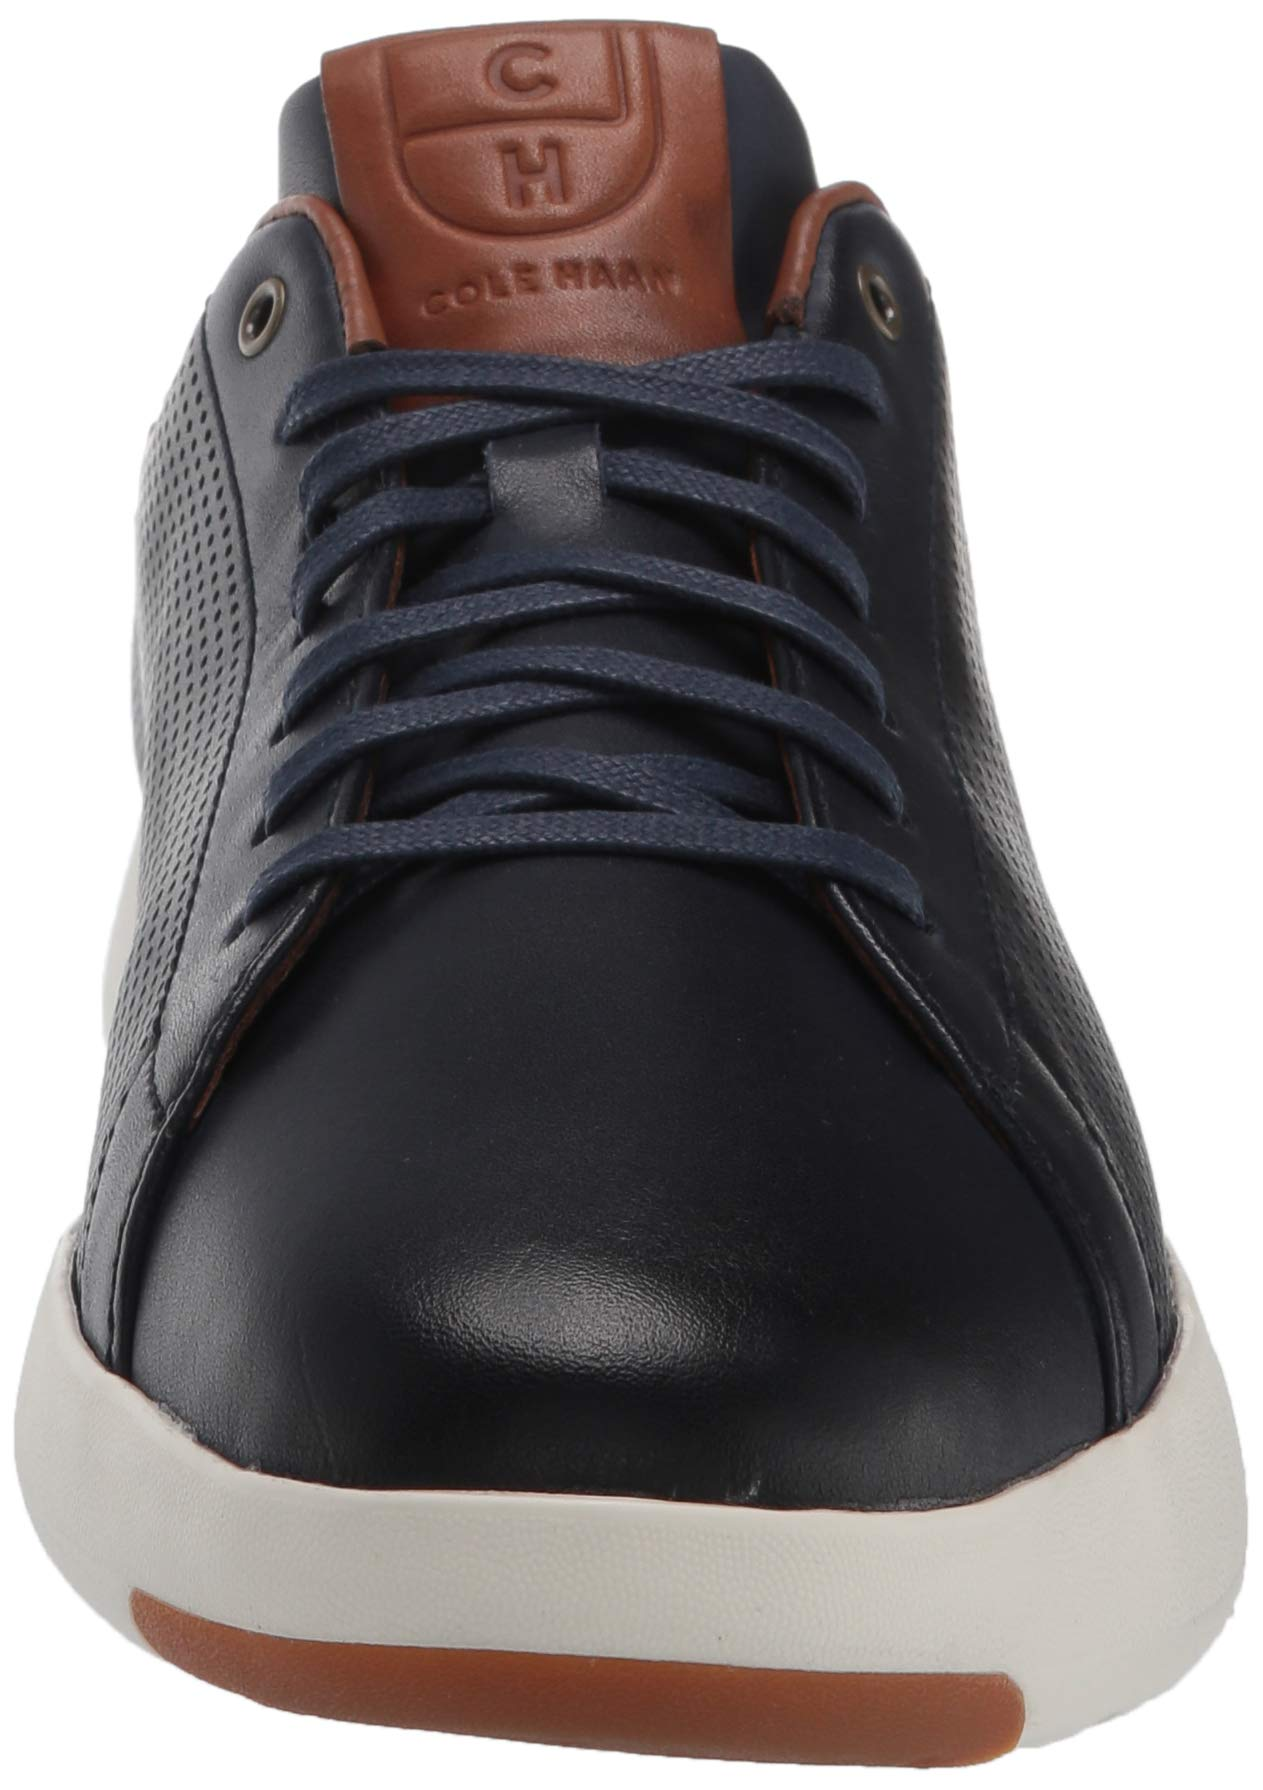 Cole Haan Mens Grandpro Tennis Sneaker 7 Navy Handstained Leather by Cole Haan (Image #4)